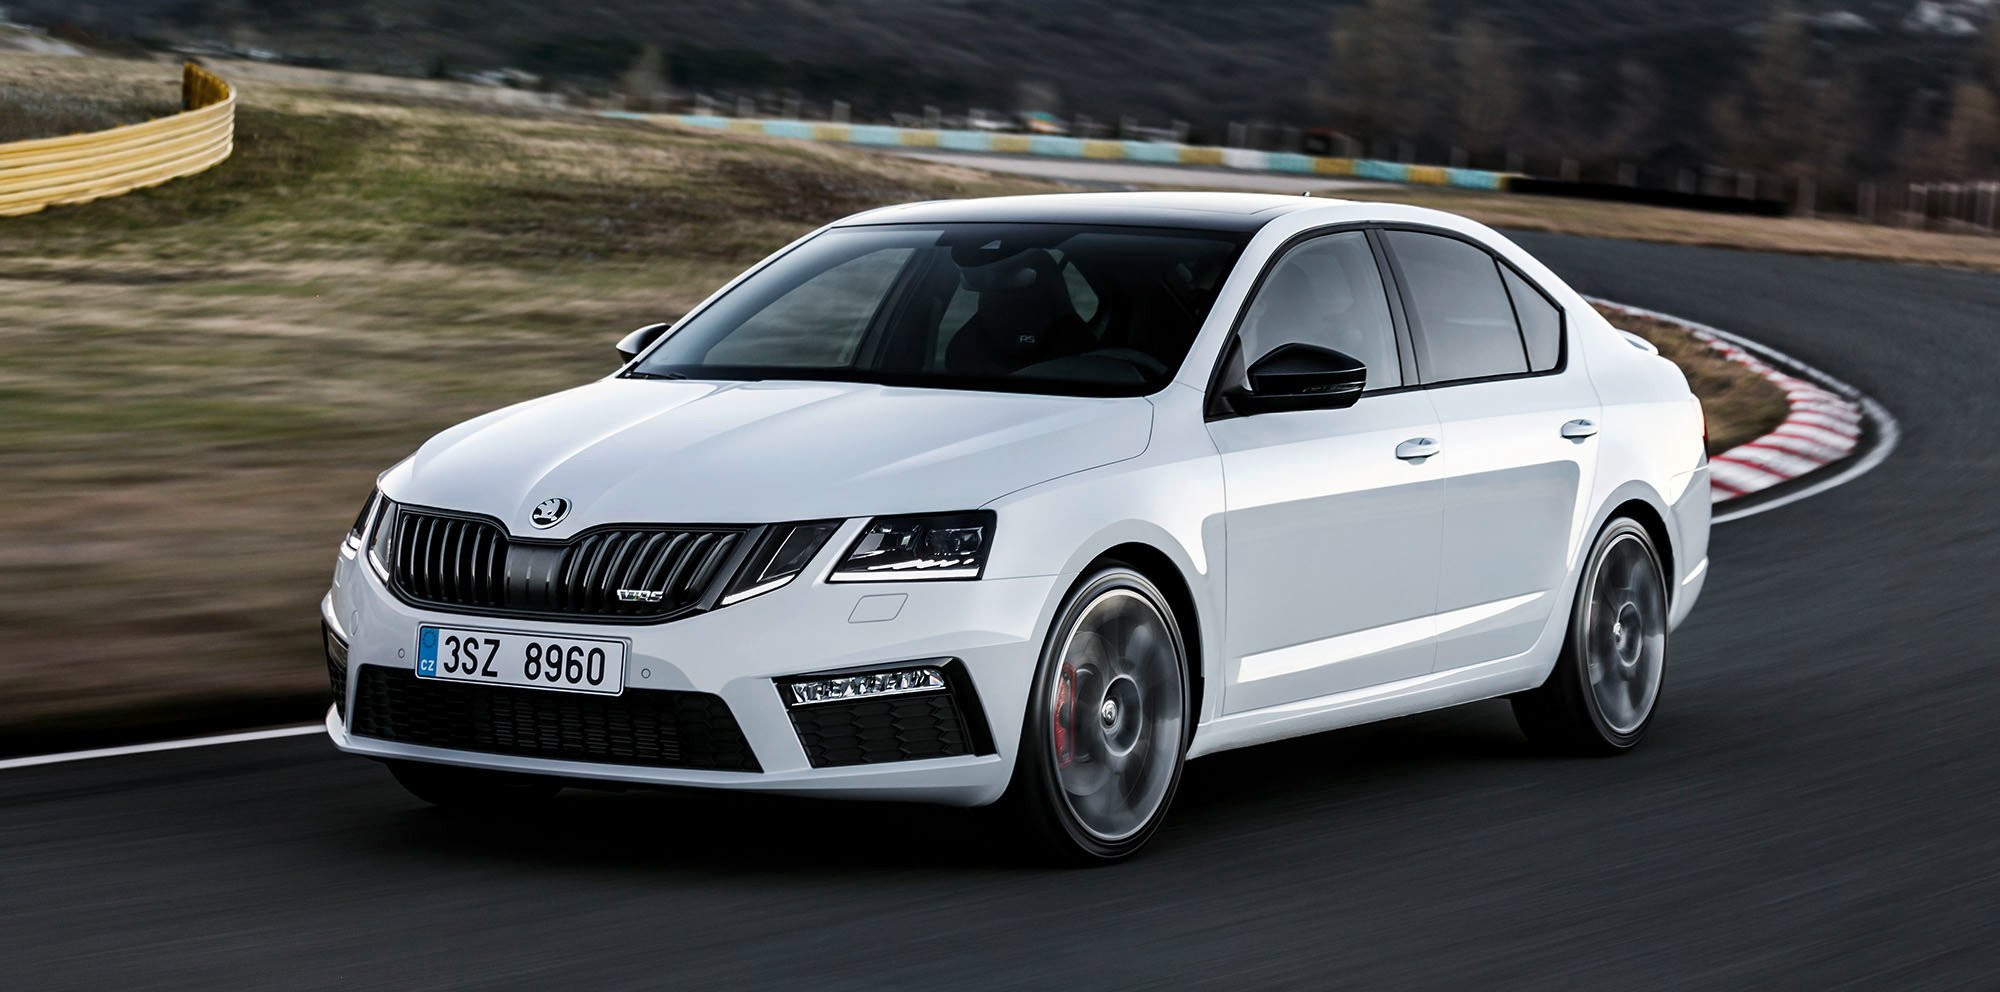 2017 skoda octavia rs facelift revealed ahead of australian debut new looks more power for hot. Black Bedroom Furniture Sets. Home Design Ideas